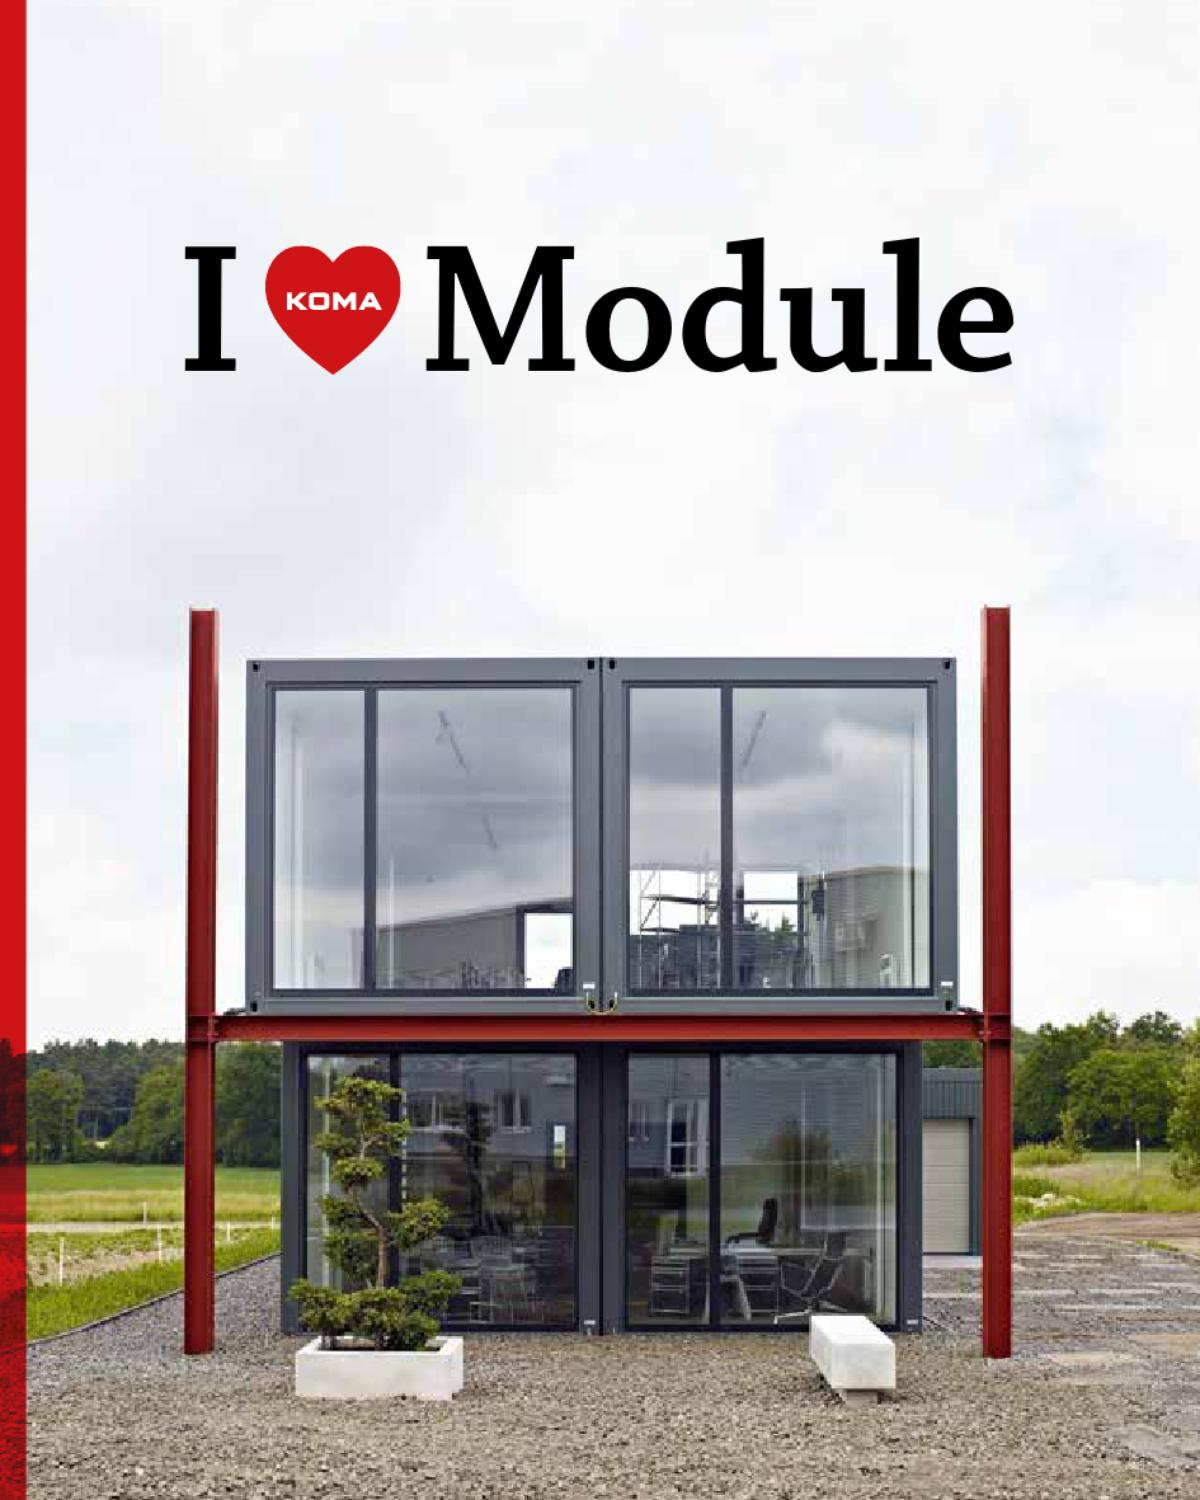 I love module by koma modular issuu for Design wohncontainer